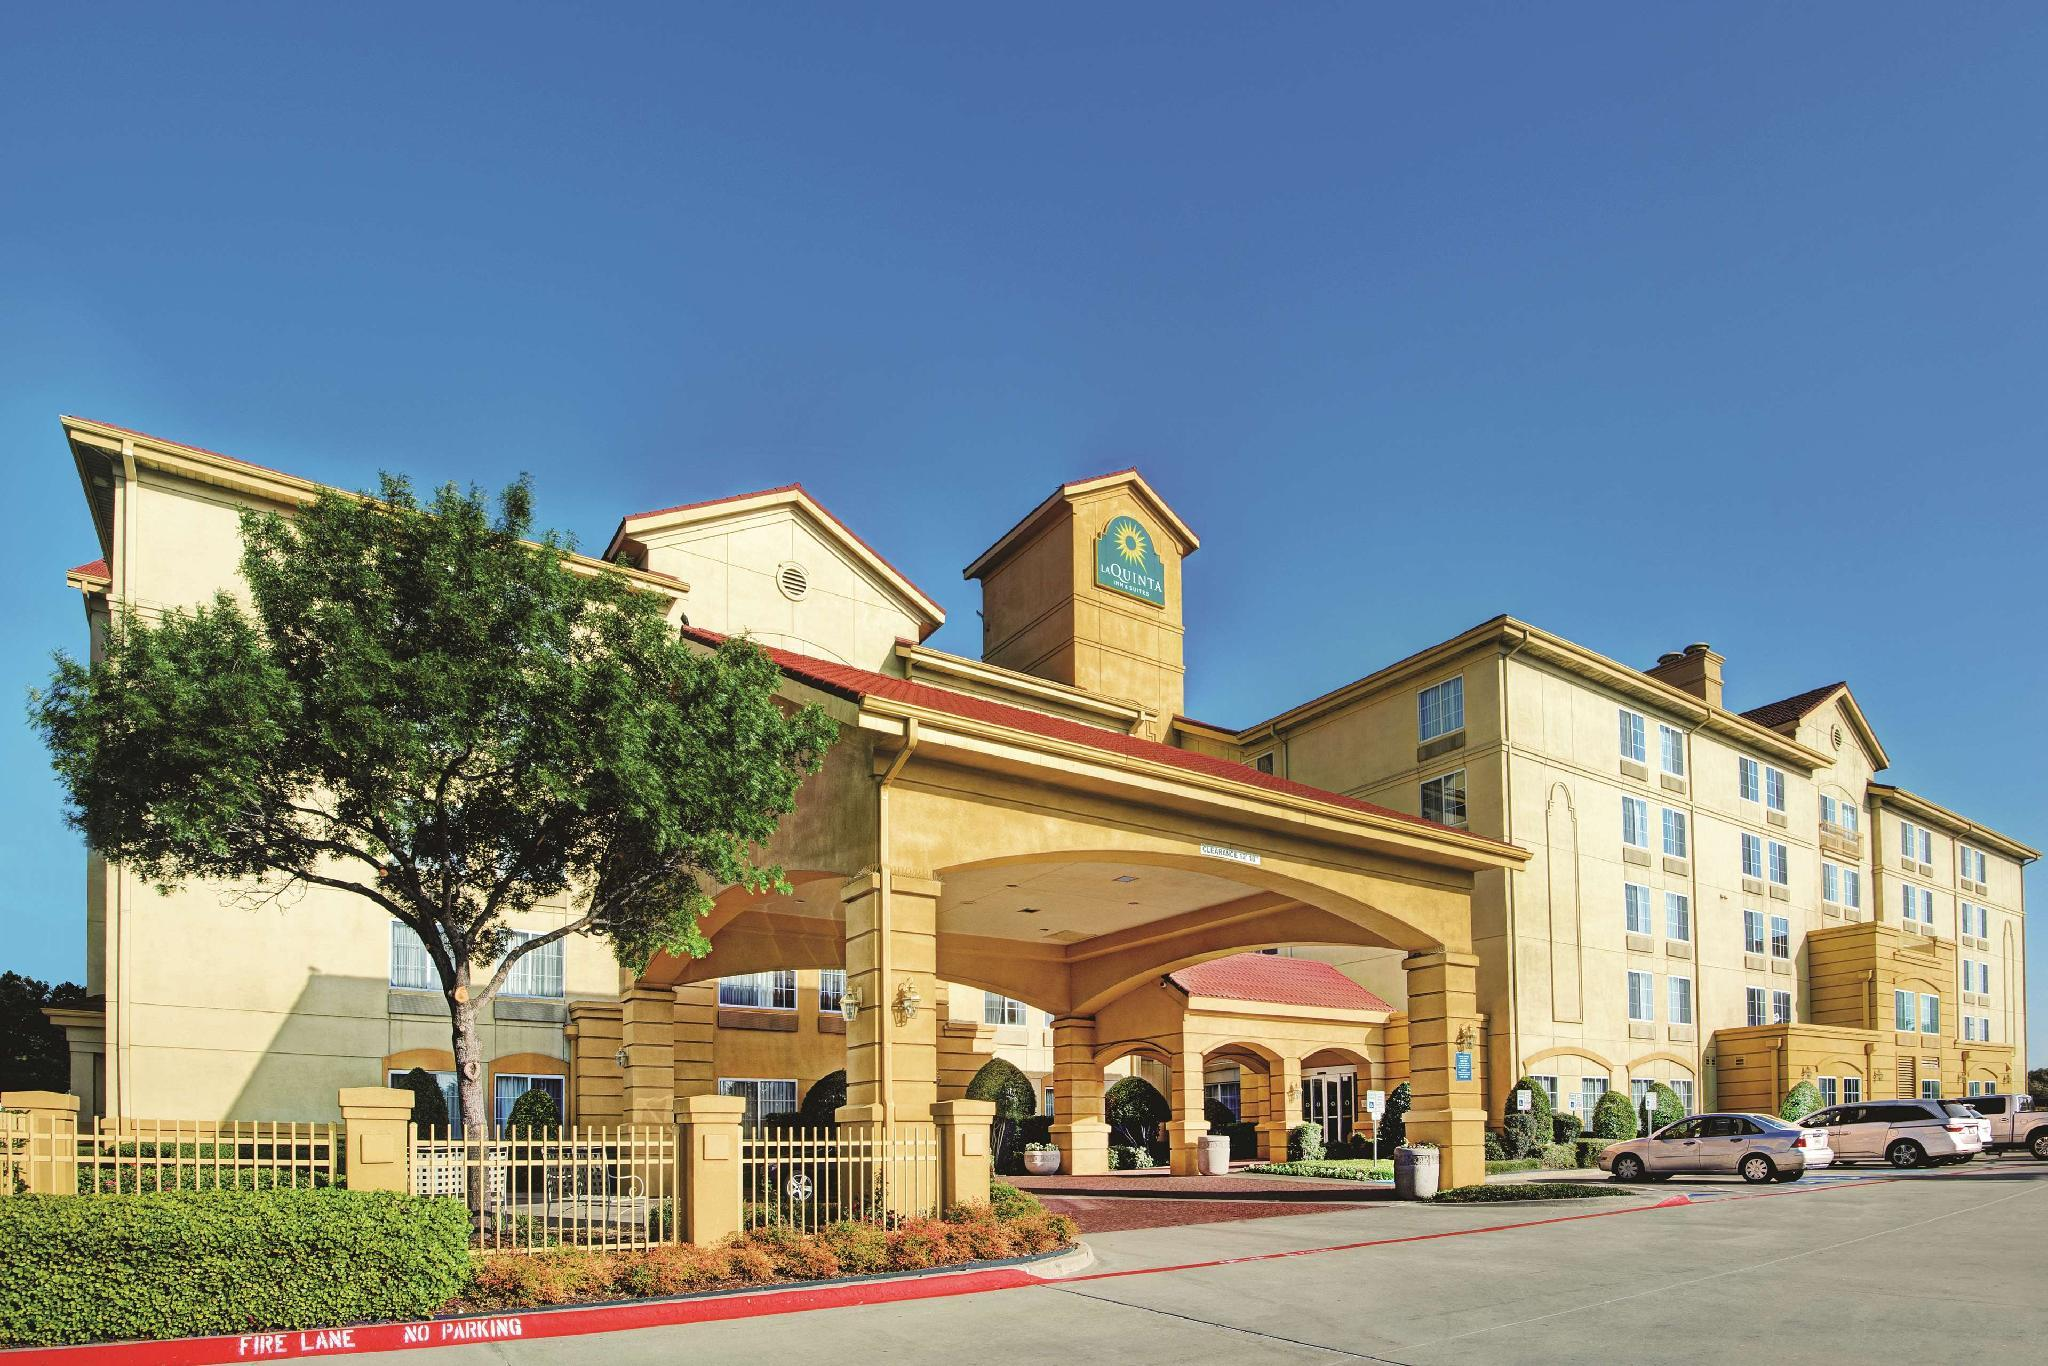 La Quinta Inn And Suites By Wyndham DFW Airport South   Irving